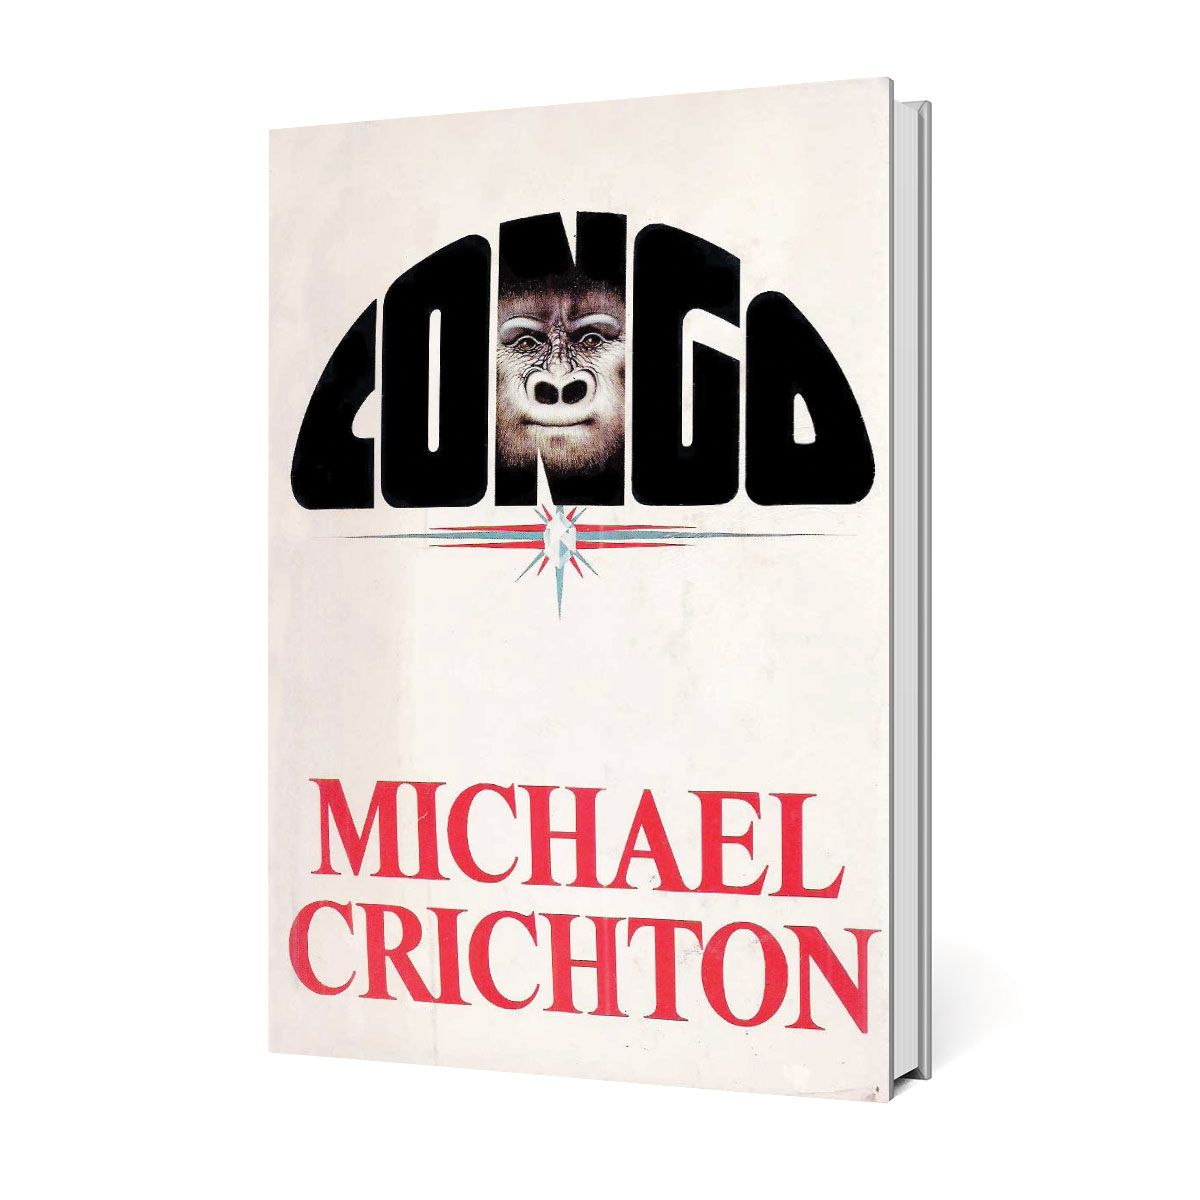 an analysis of the novel eaters of the dead by michael crichton Eaters of the dead is a book by michael crichton on -3-1976  eaters of the dead by : michael crichton language :  by michael lewis | summary & analysis free.